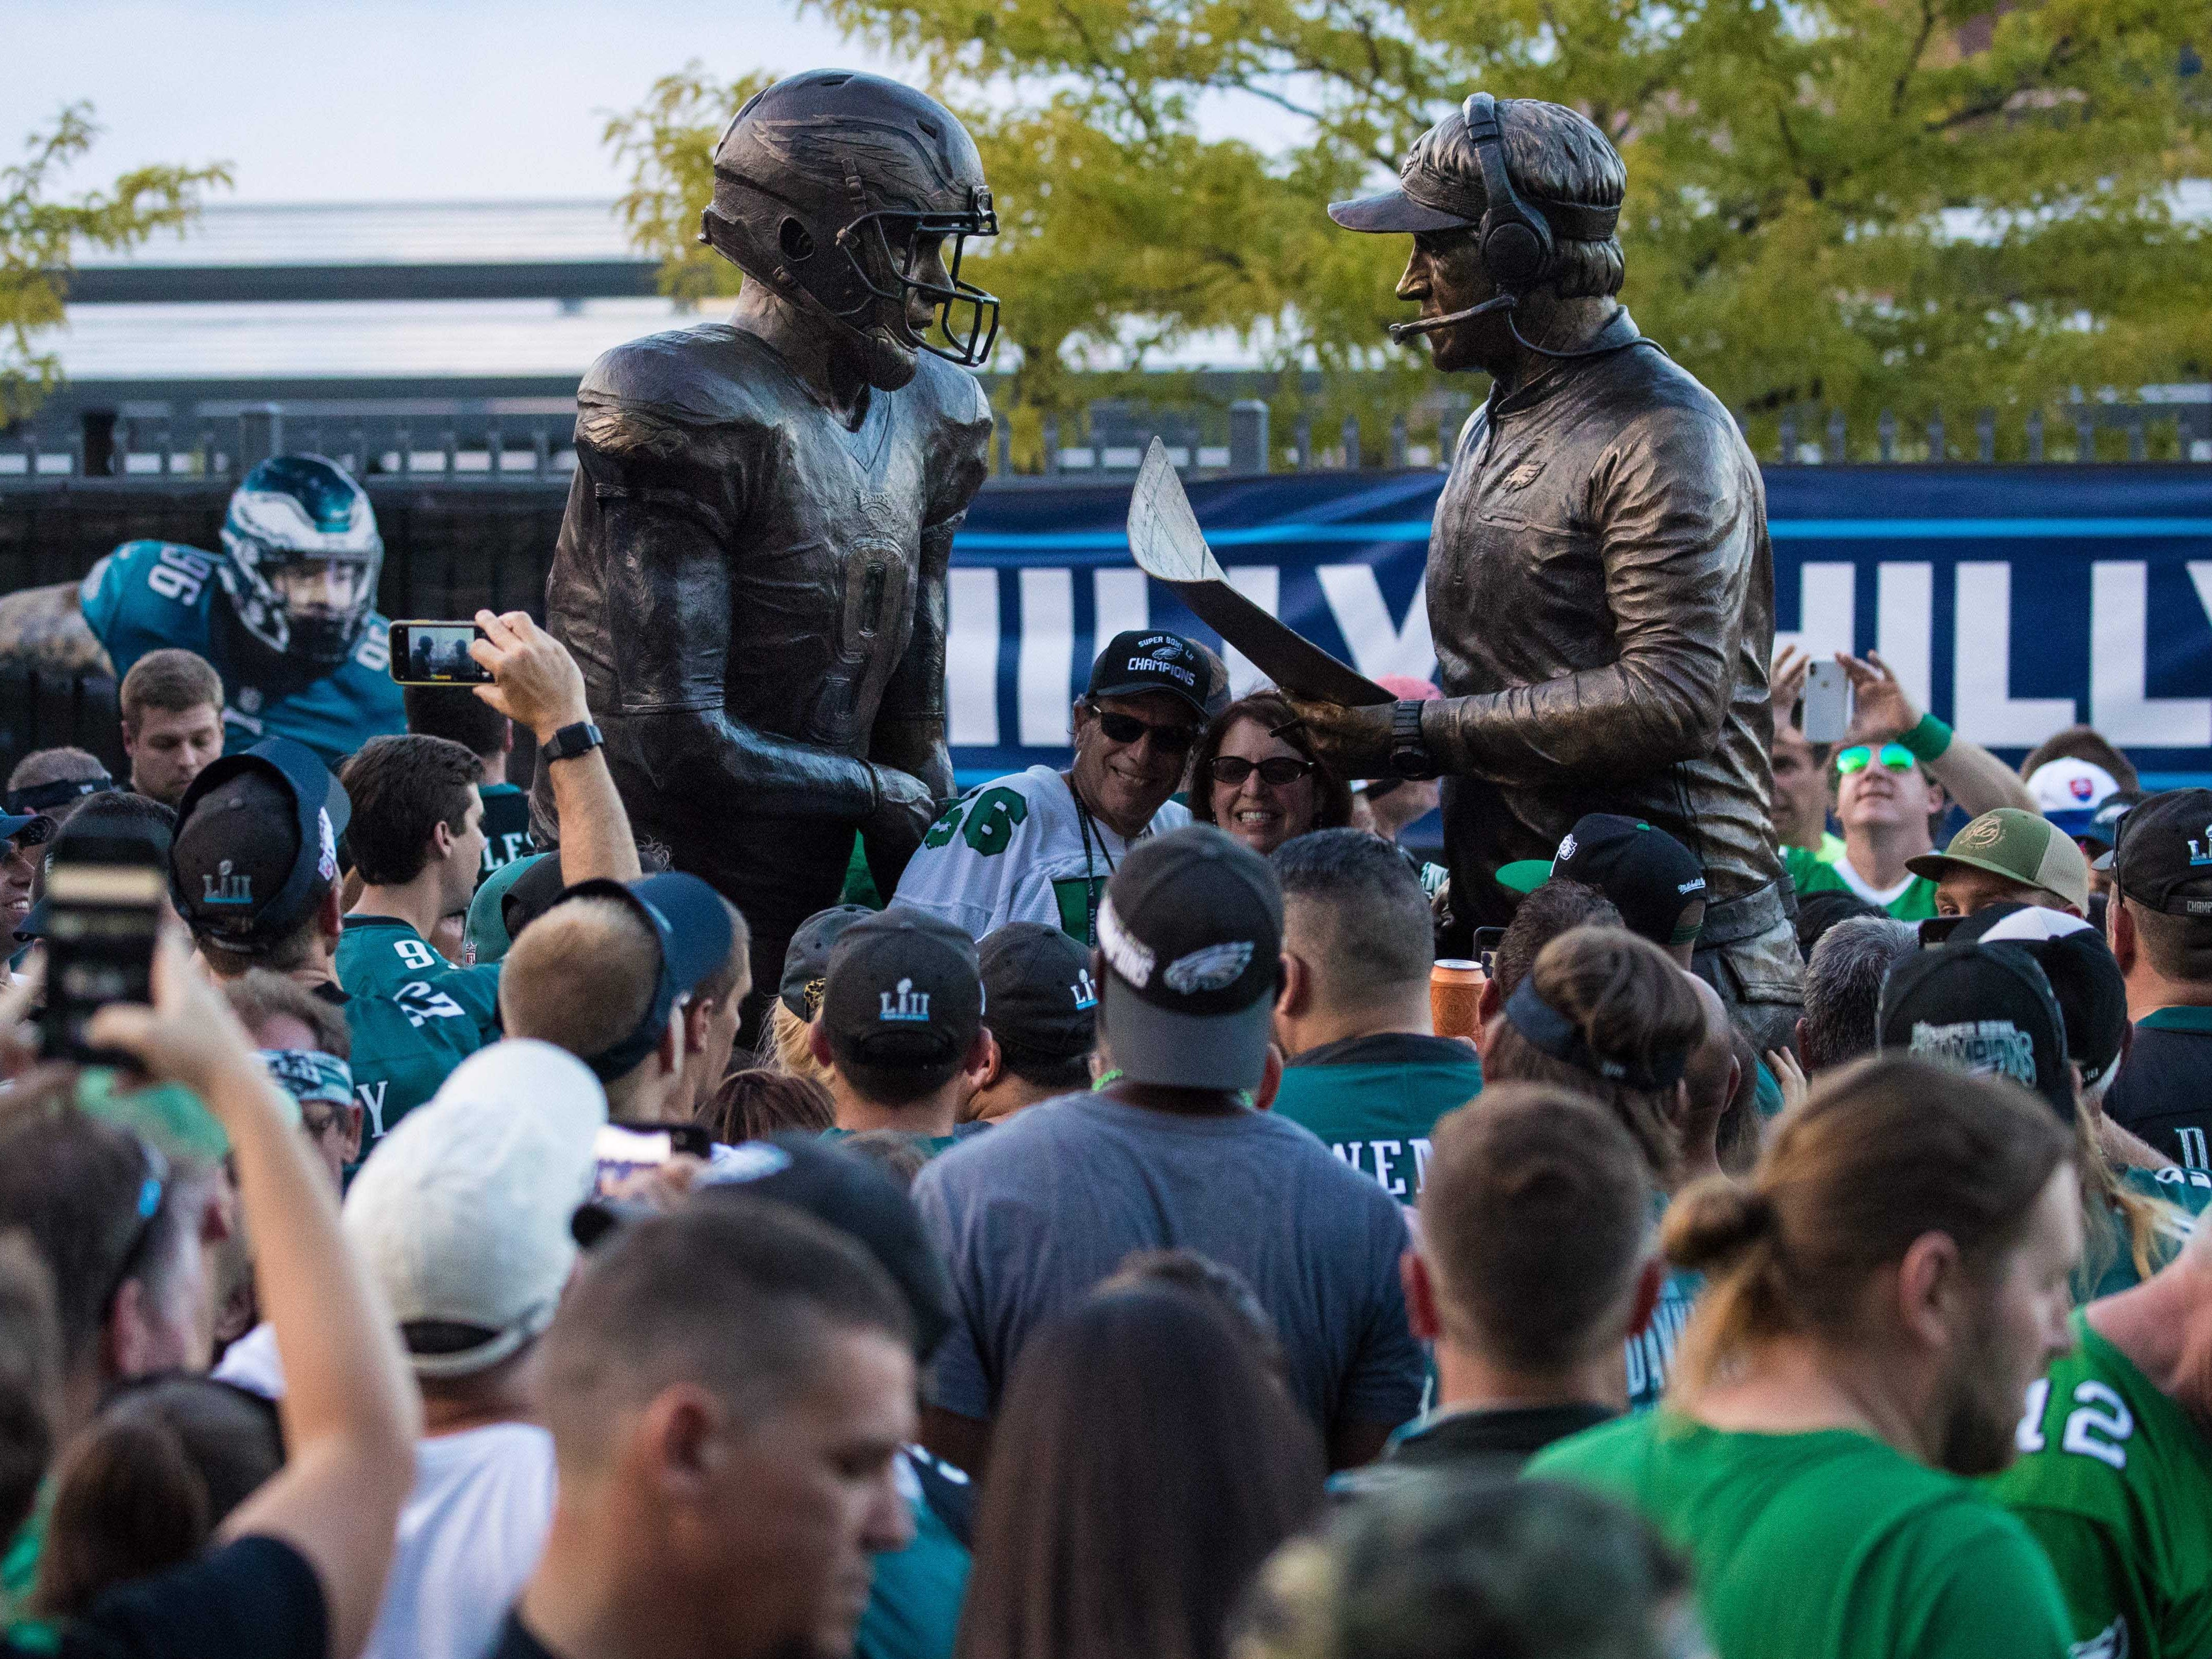 Philadelphia Eagles fans crowd around a new statue depicting head coach Doug Pederson (right) and quarterback Nick Roles (left) during Super Bowl LII.